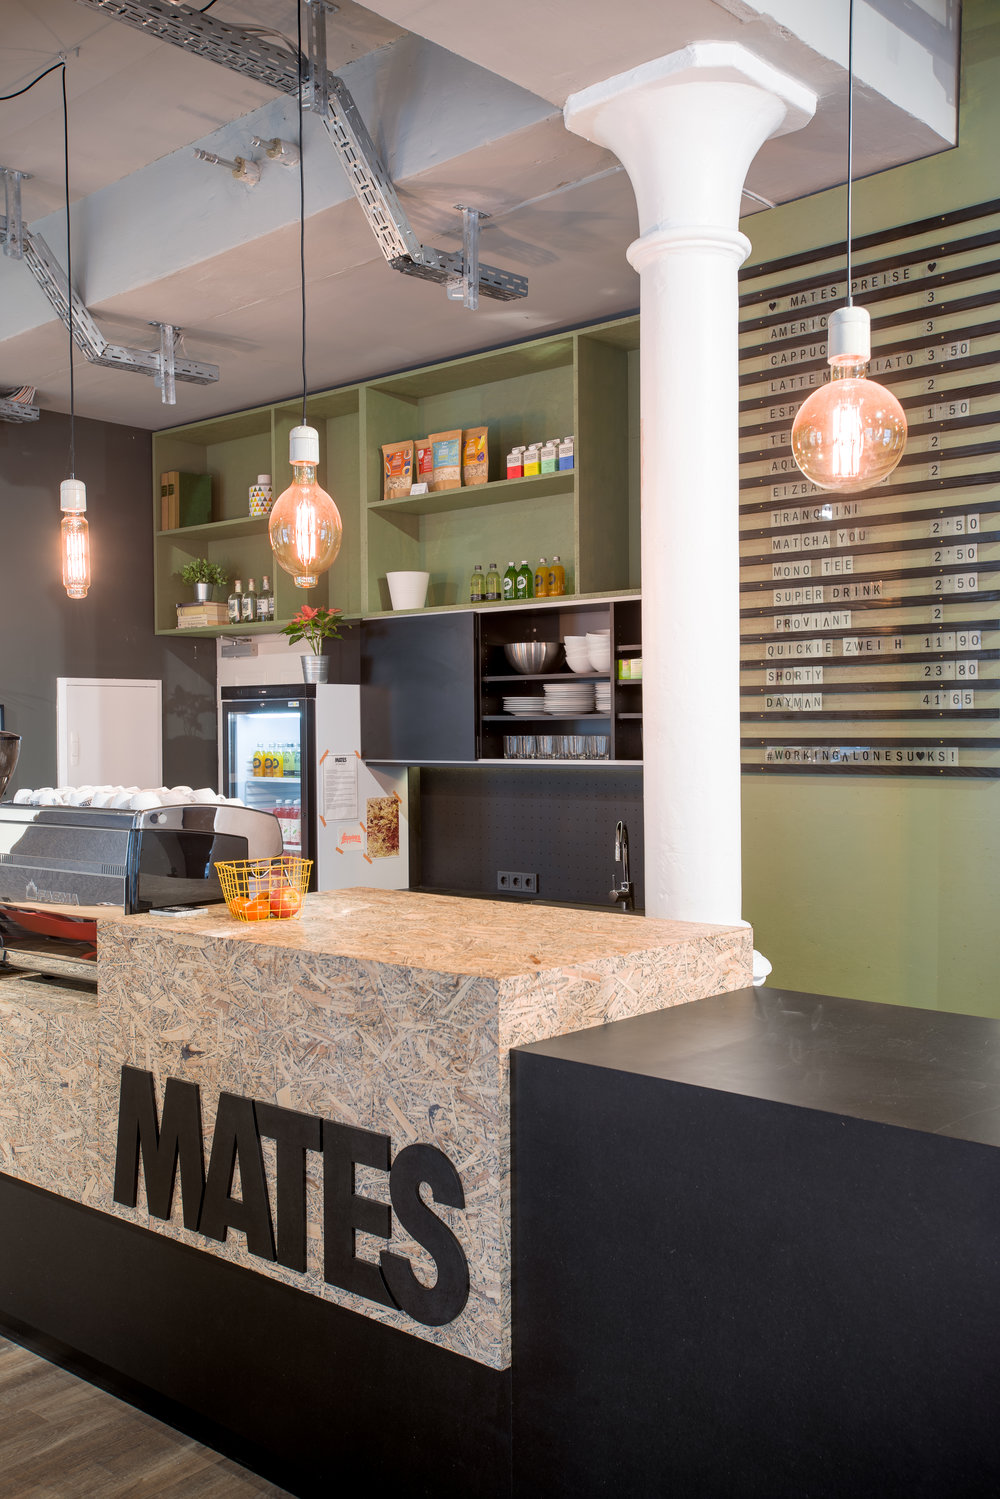 Mates Munich, Coworking, co-working space, bar, lounge, communication, office, interior architecture, design